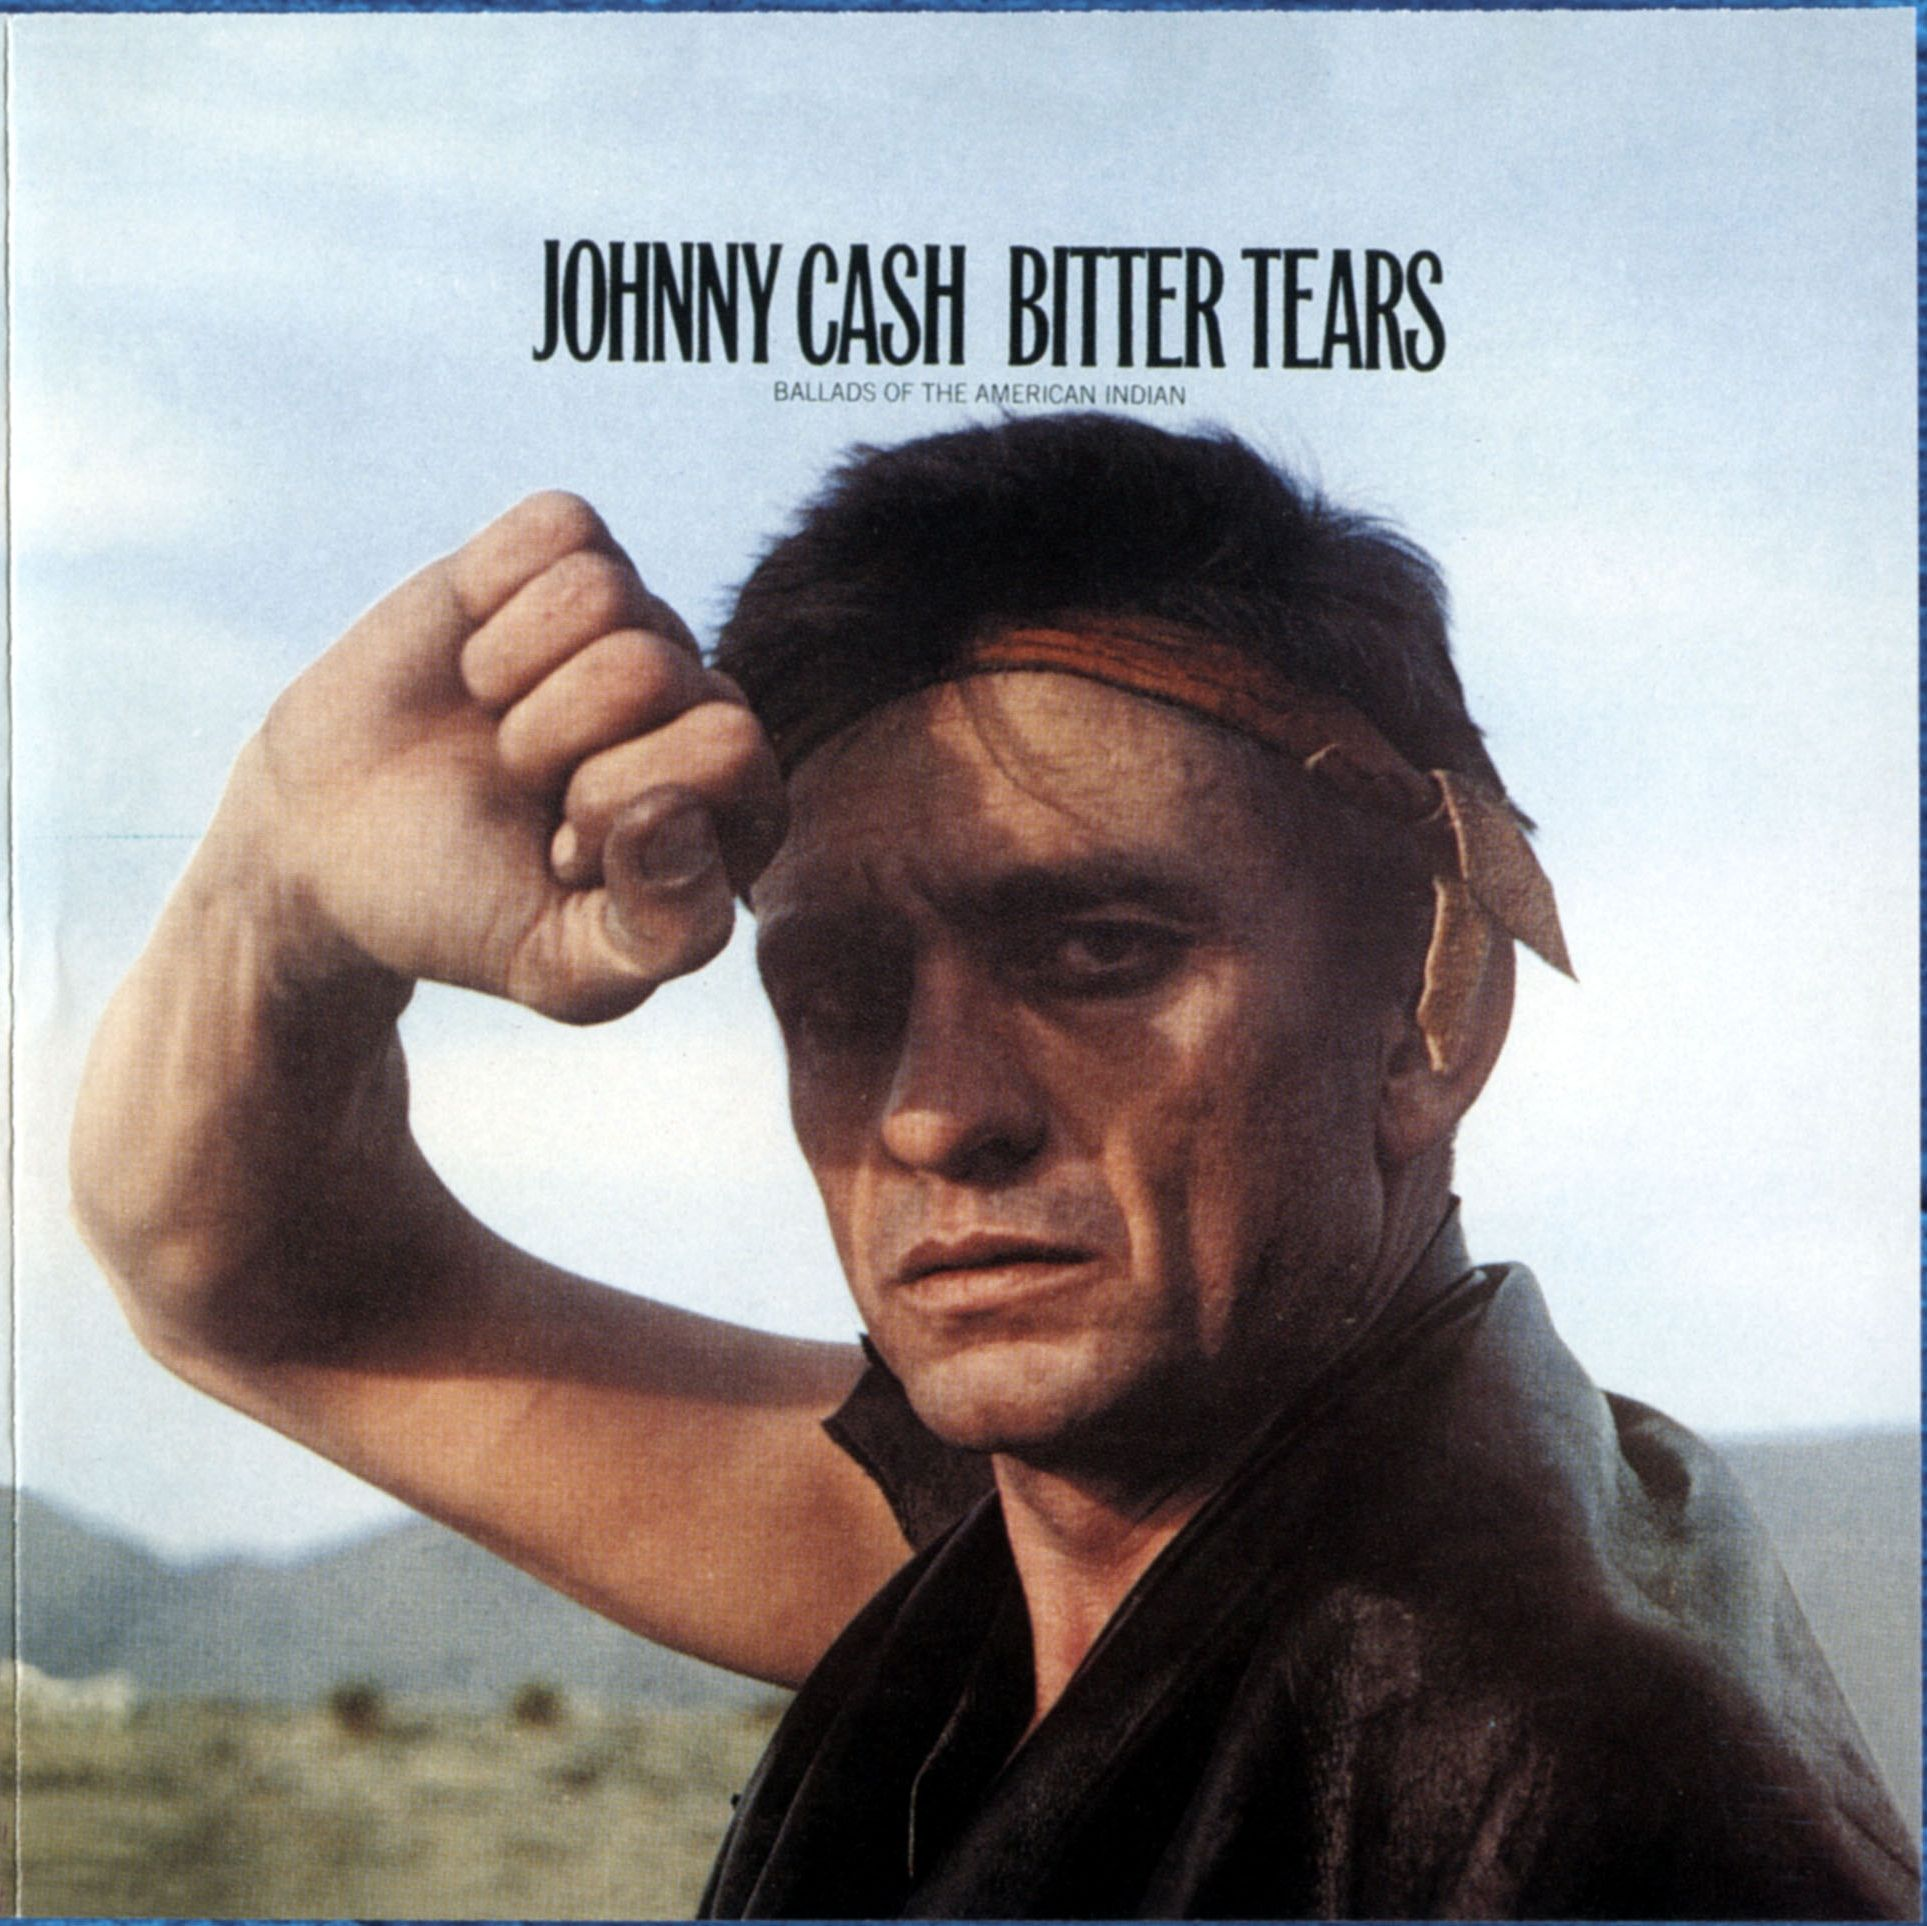 Johnny Cash - Bitter Tears: Johnny Cash Sings Ballads Of The American Indian - Album Cover